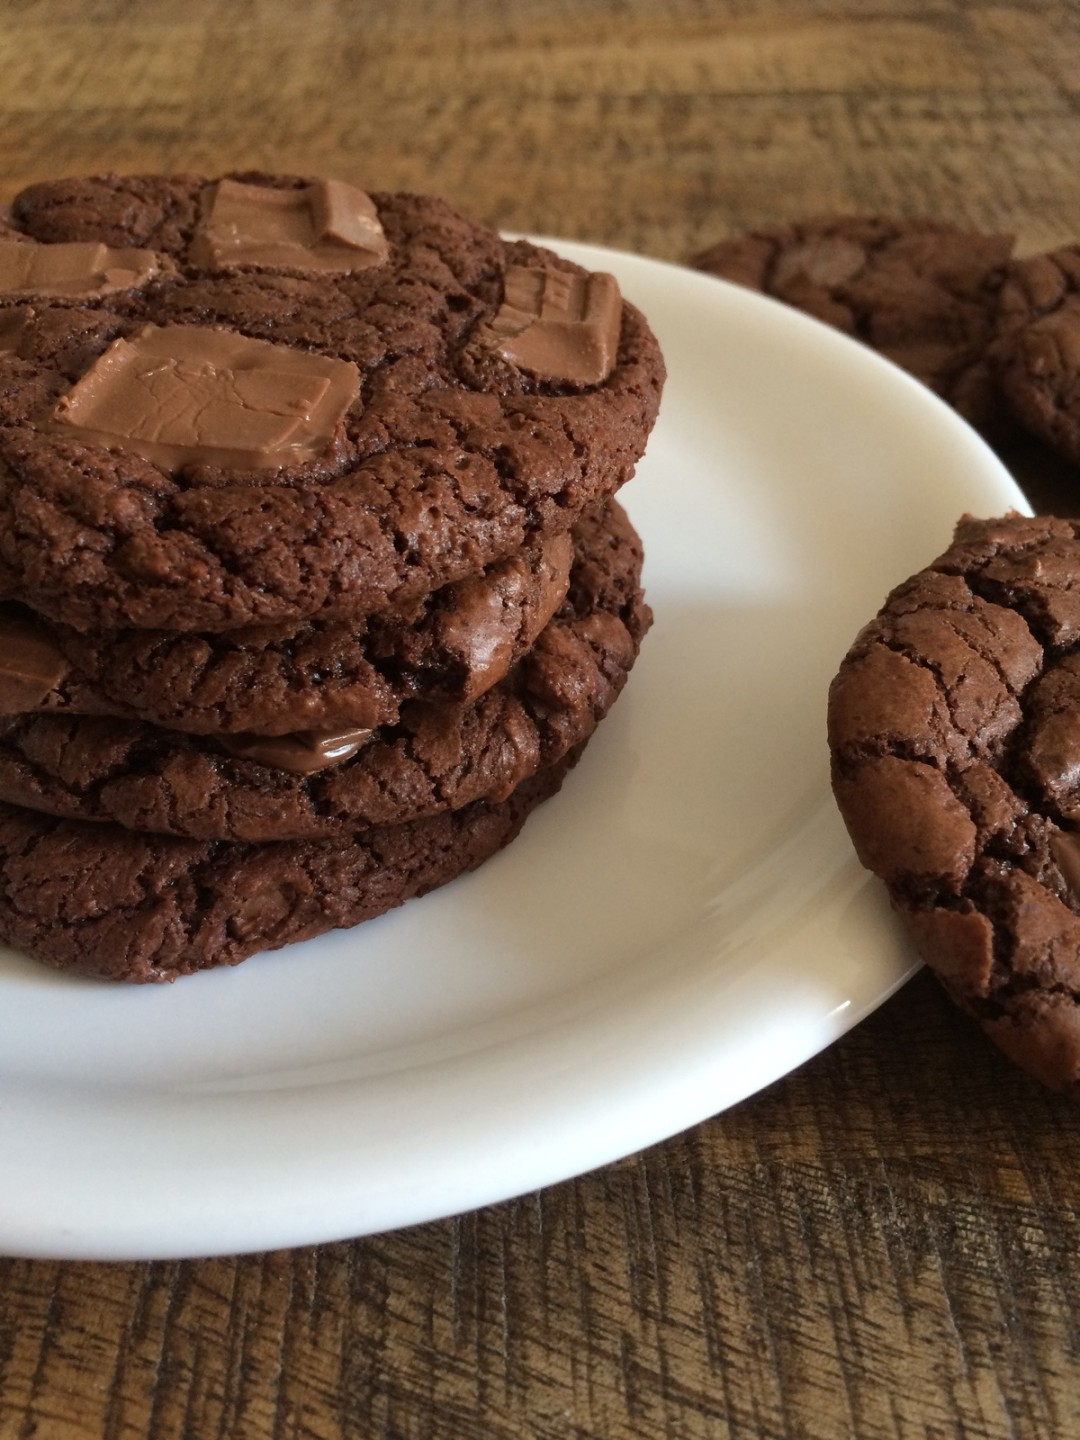 Outrageous chocolate cookie